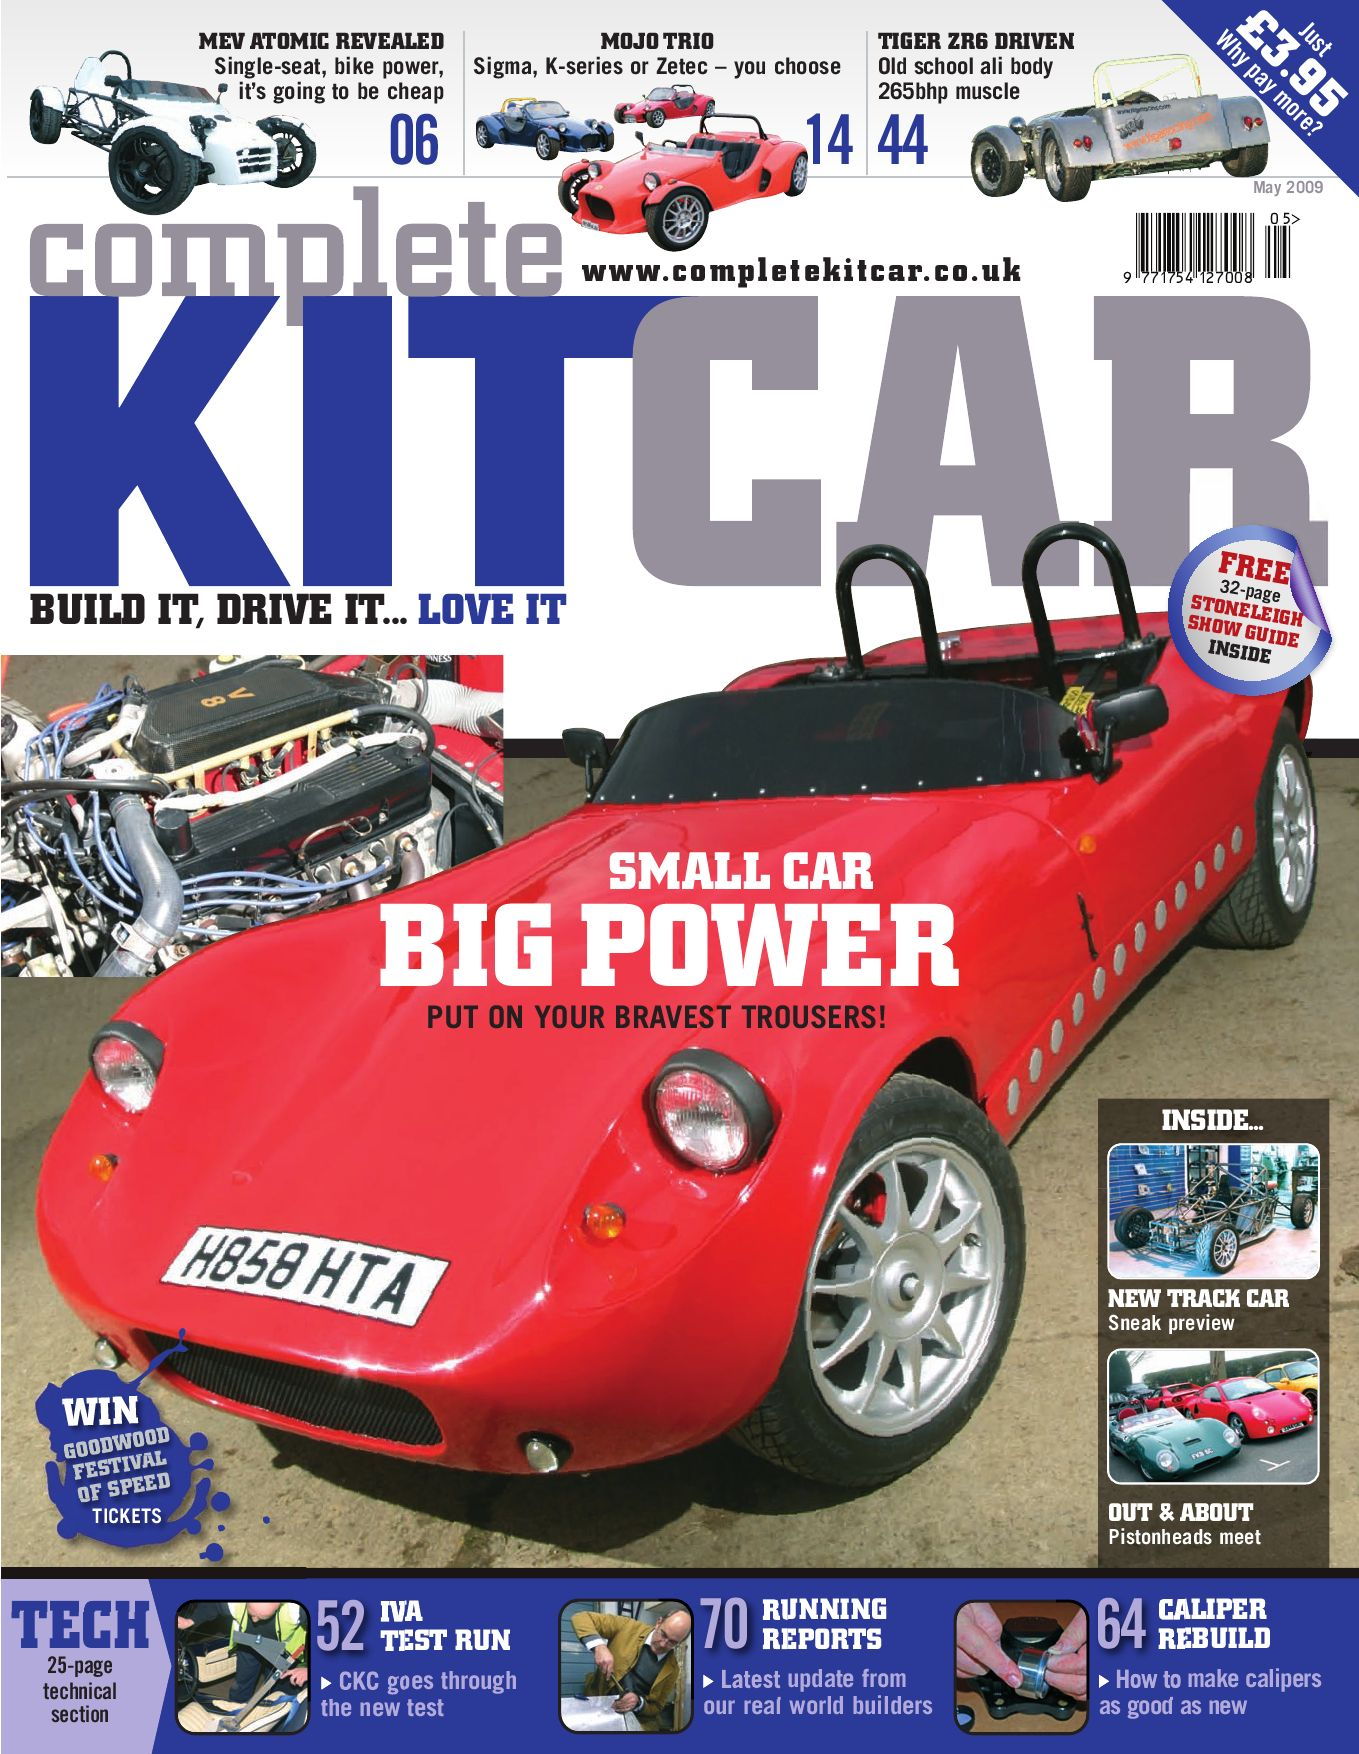 Complete Kit Car Magazine May 2009 Advertising Preview By